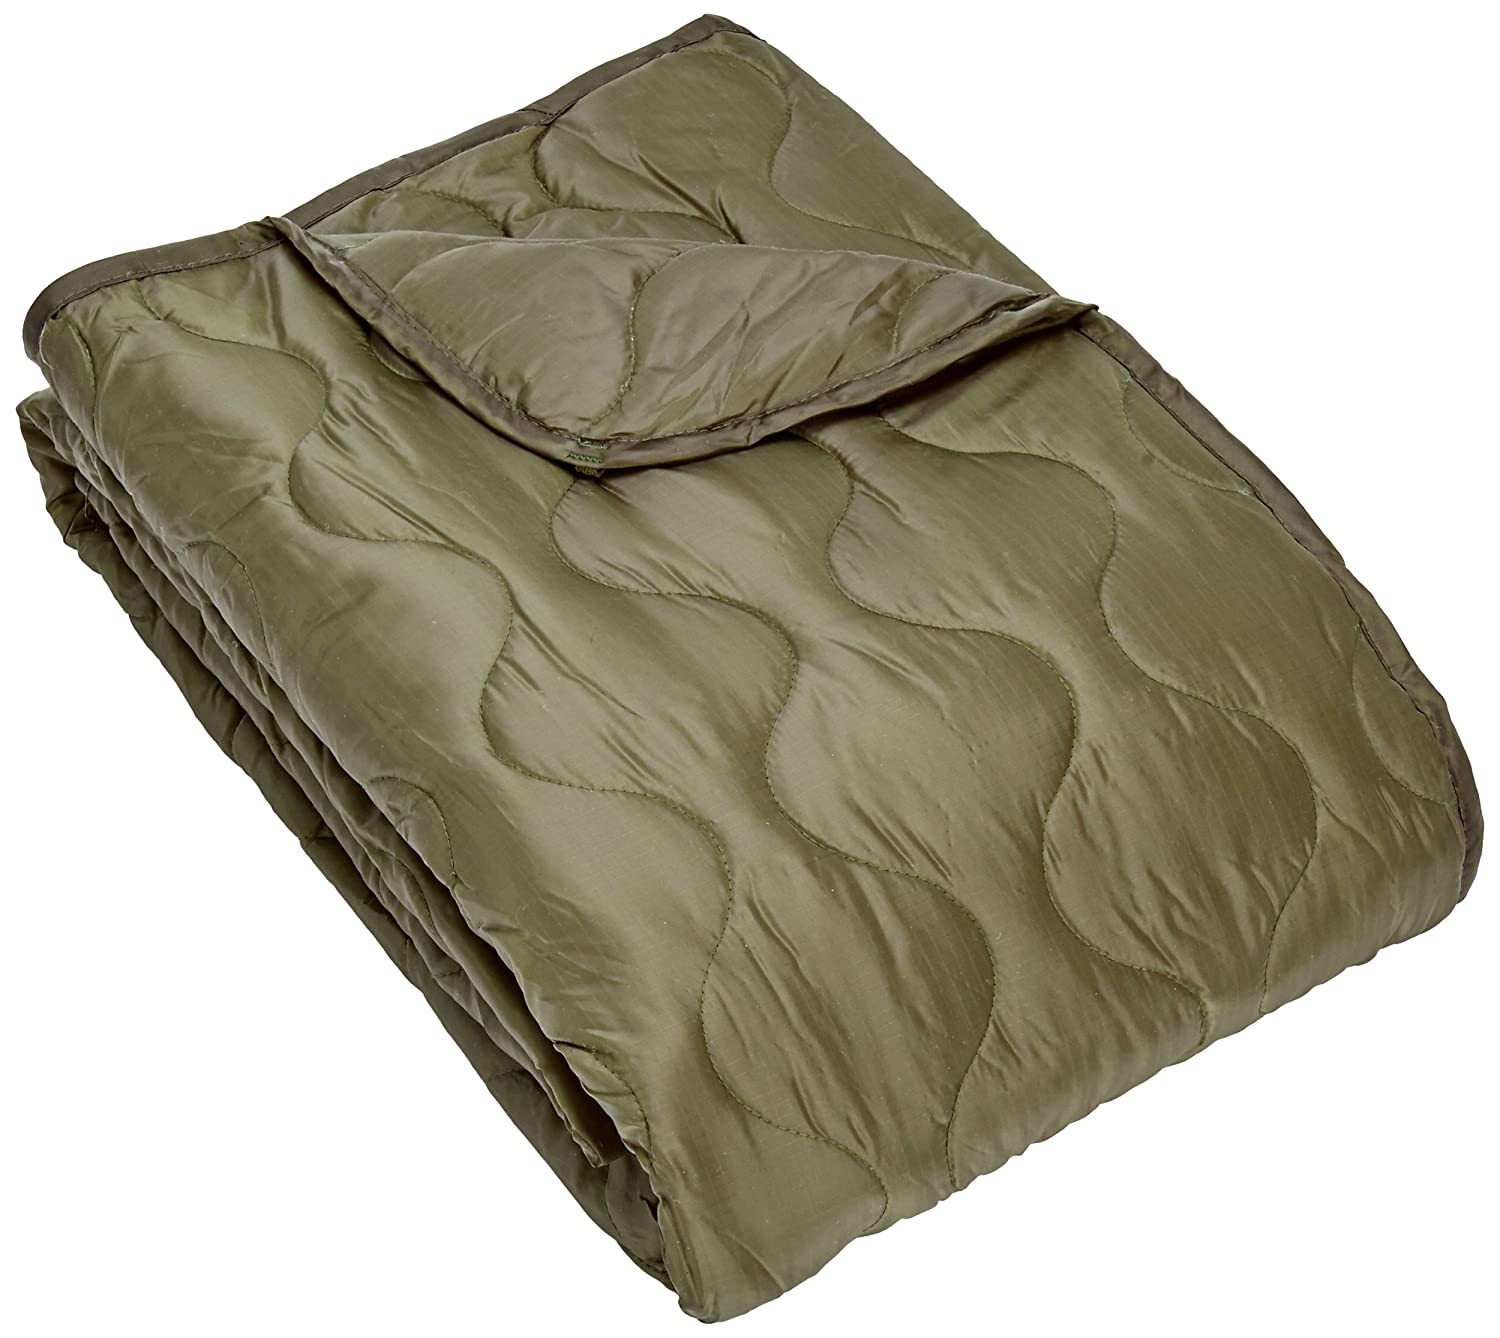 Army Style Poncho Liner Quilted Travel Car Blanket Sleeping Bag Ripstop Olive Mil-Tec 14425001